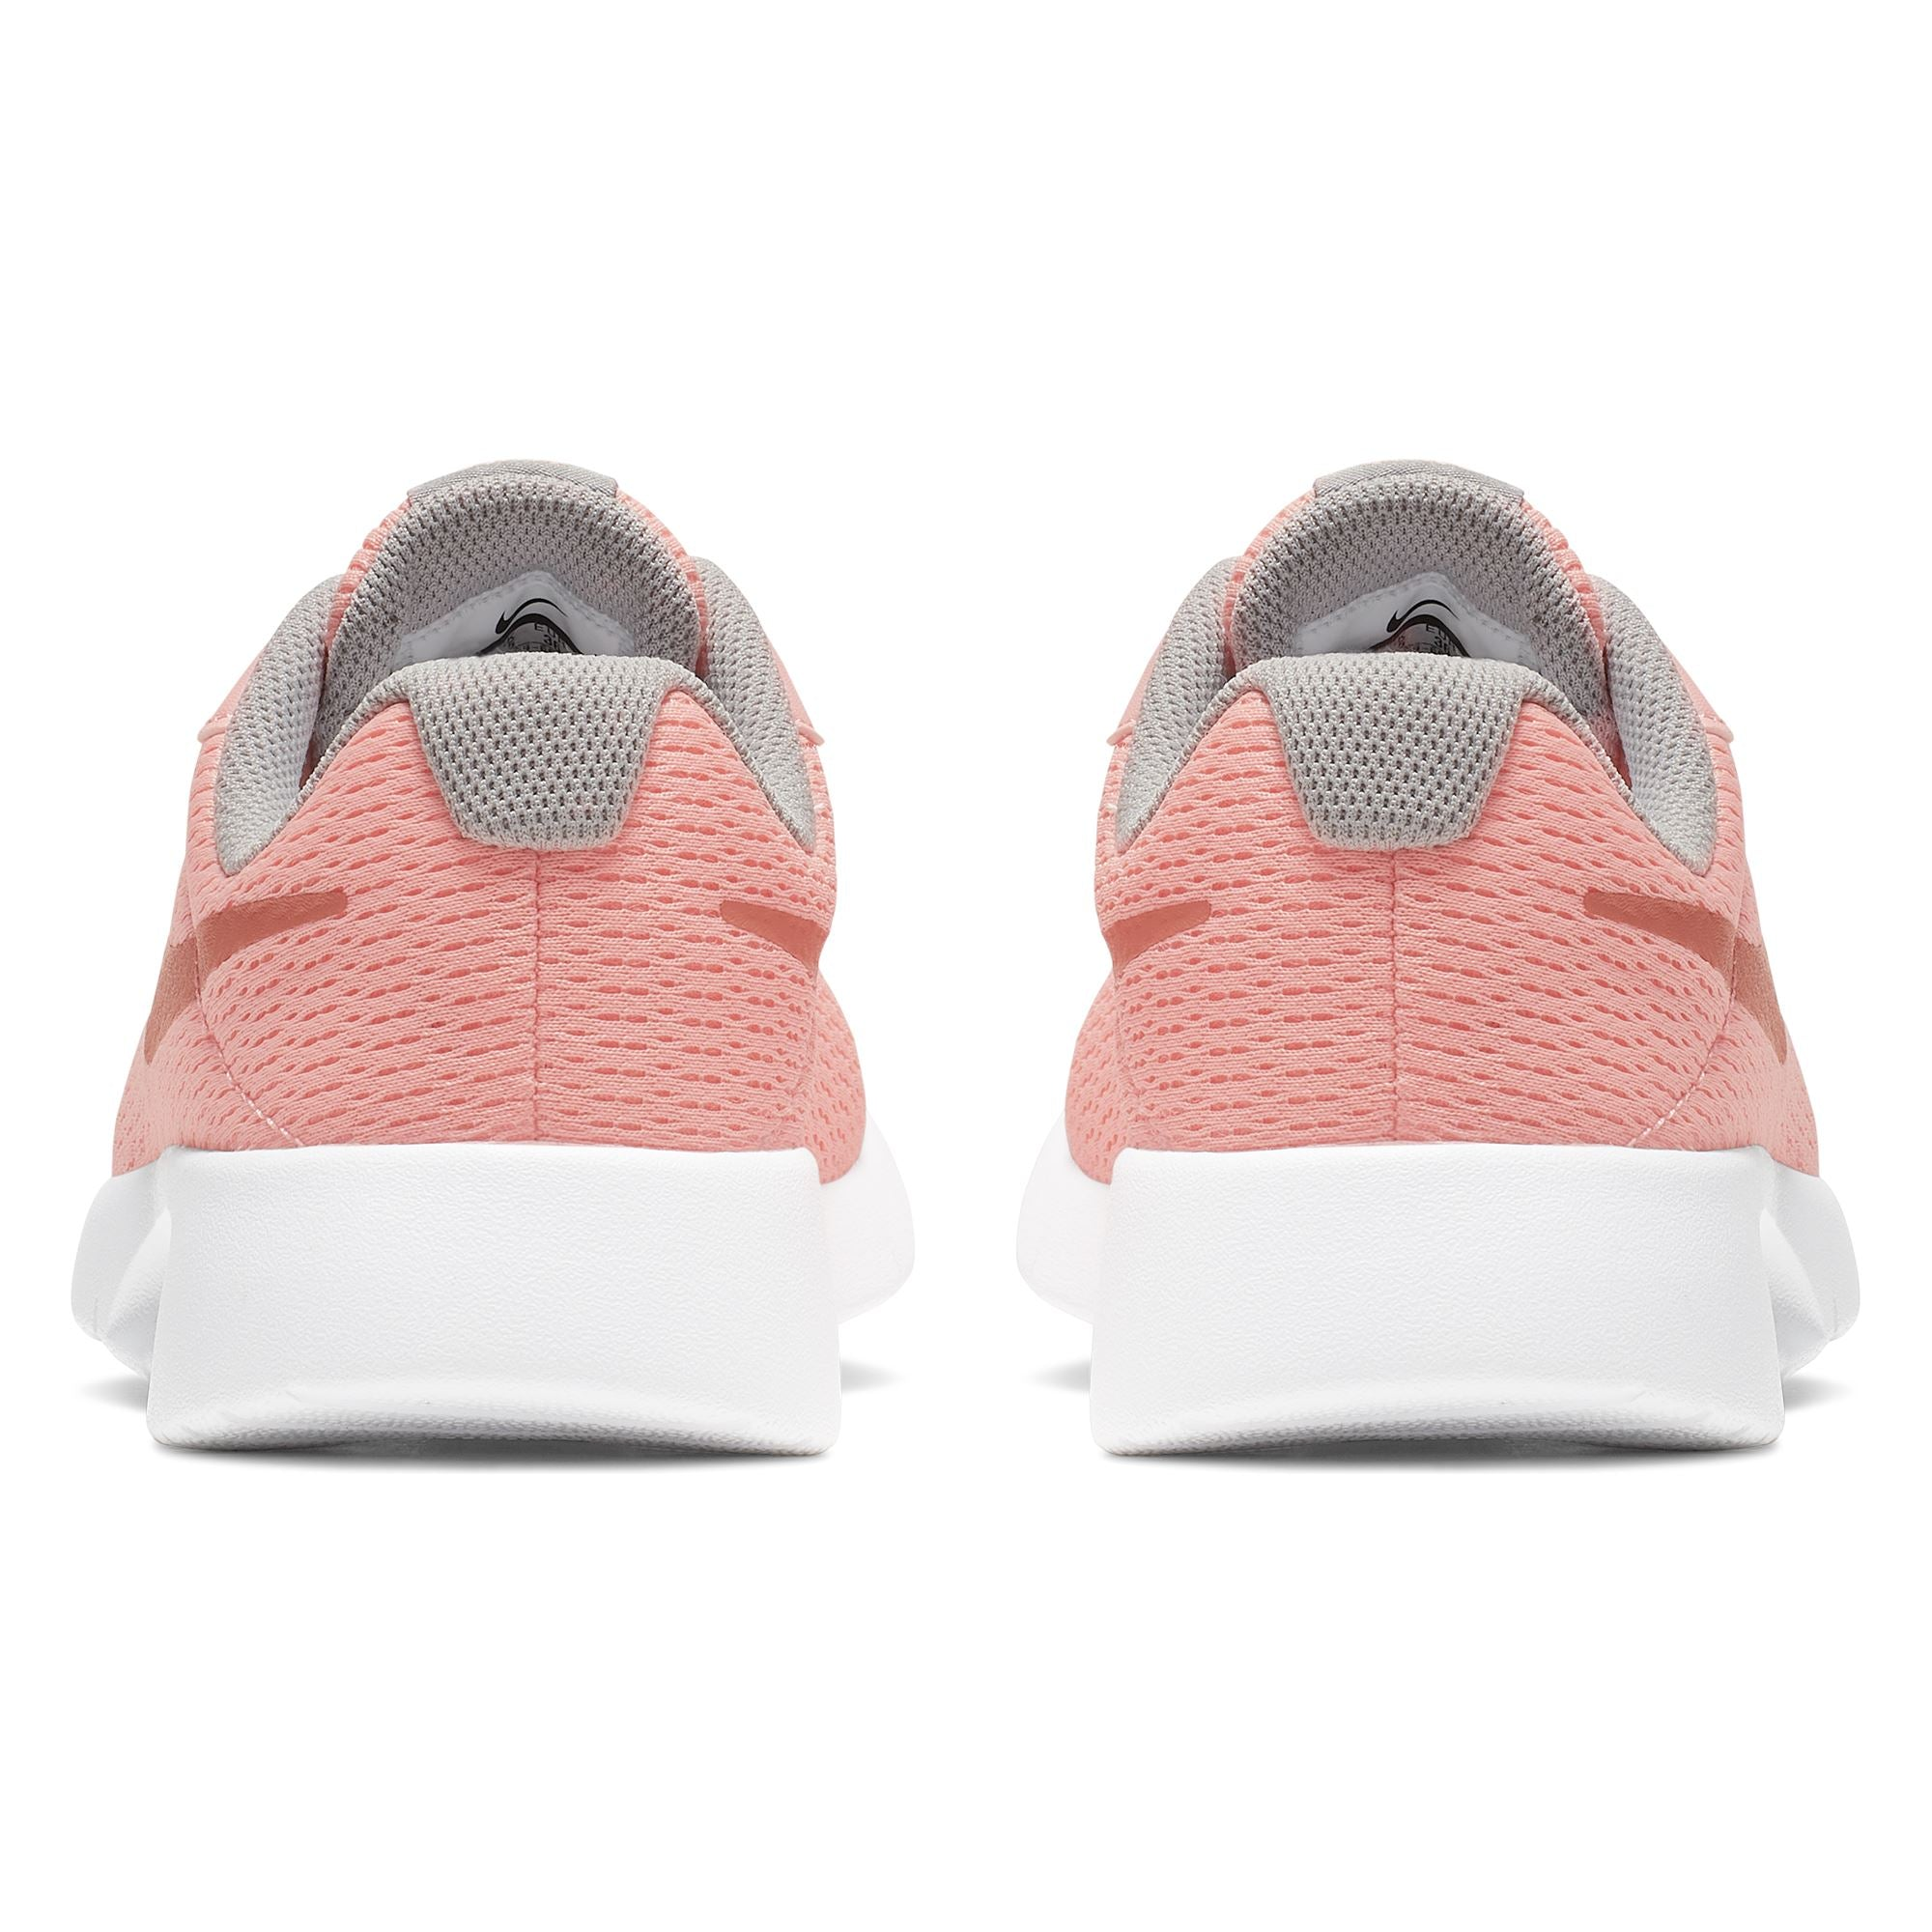 nowy przyjeżdża dobra tekstura 50% zniżki Nike Girls Tanjun (GS) Girls' Shoe - Pink Tint/Mtlc Rose Gold-Atmosphere  Grey